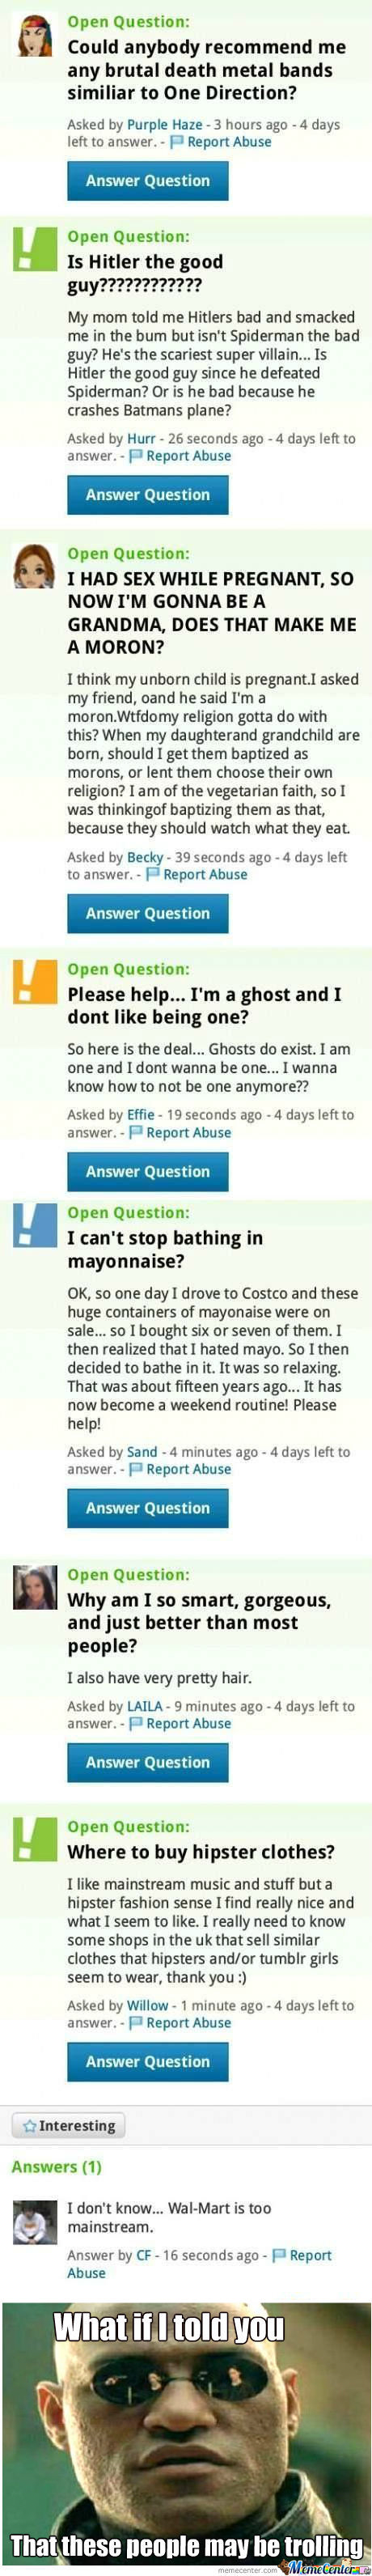 [RMX] Meanwhile, On Yahoo Answers